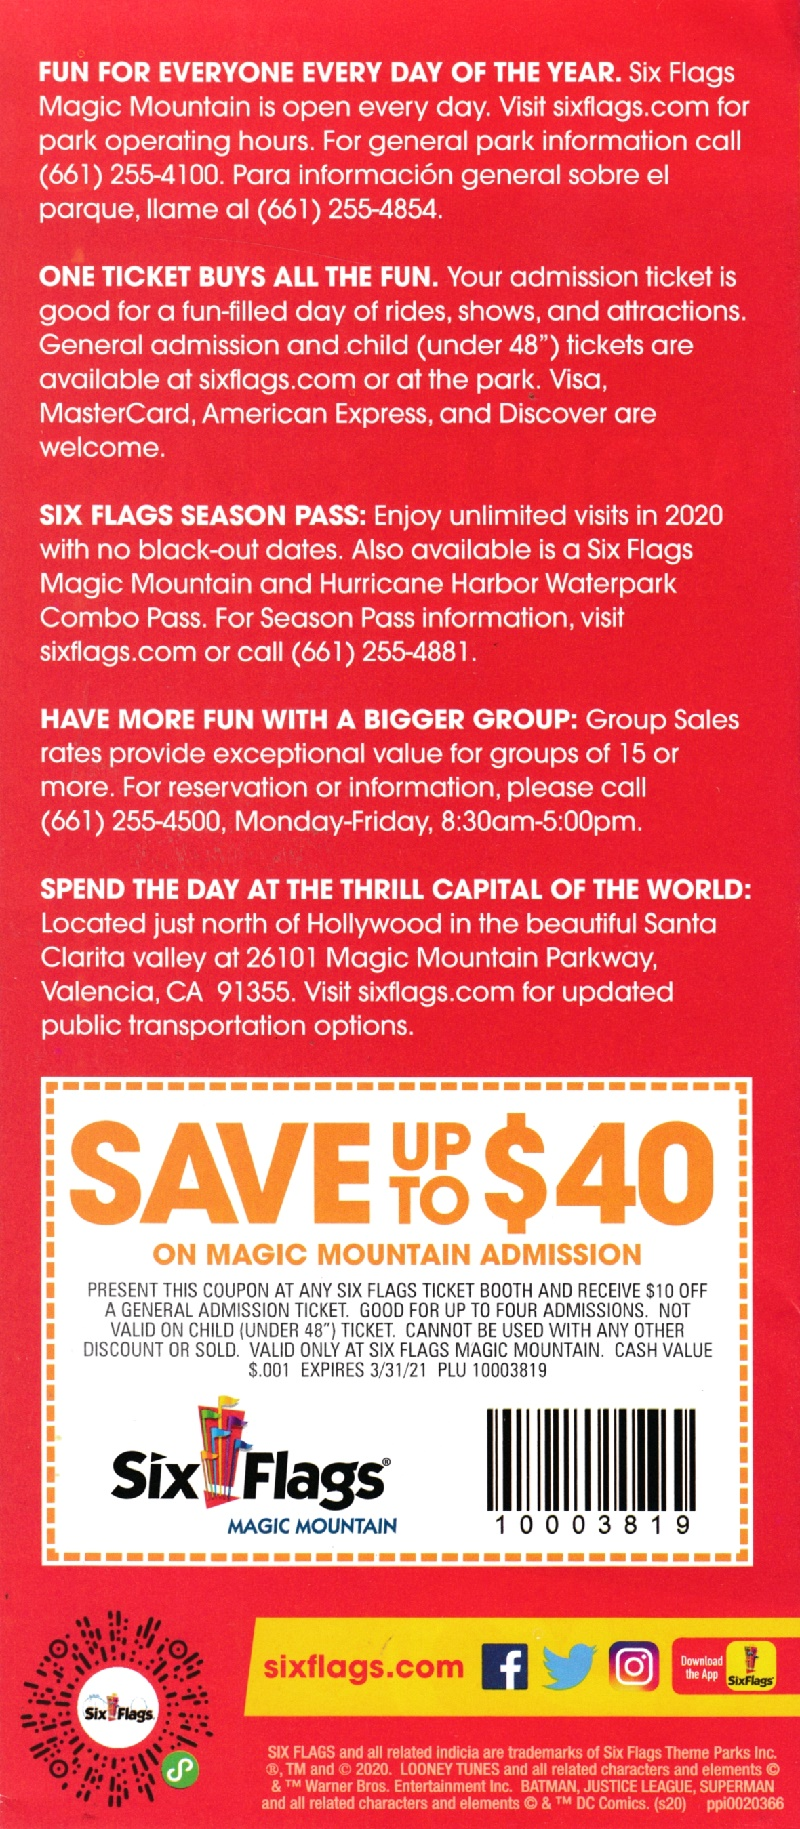 Six Flags Magic Mountain brochure thumbnail